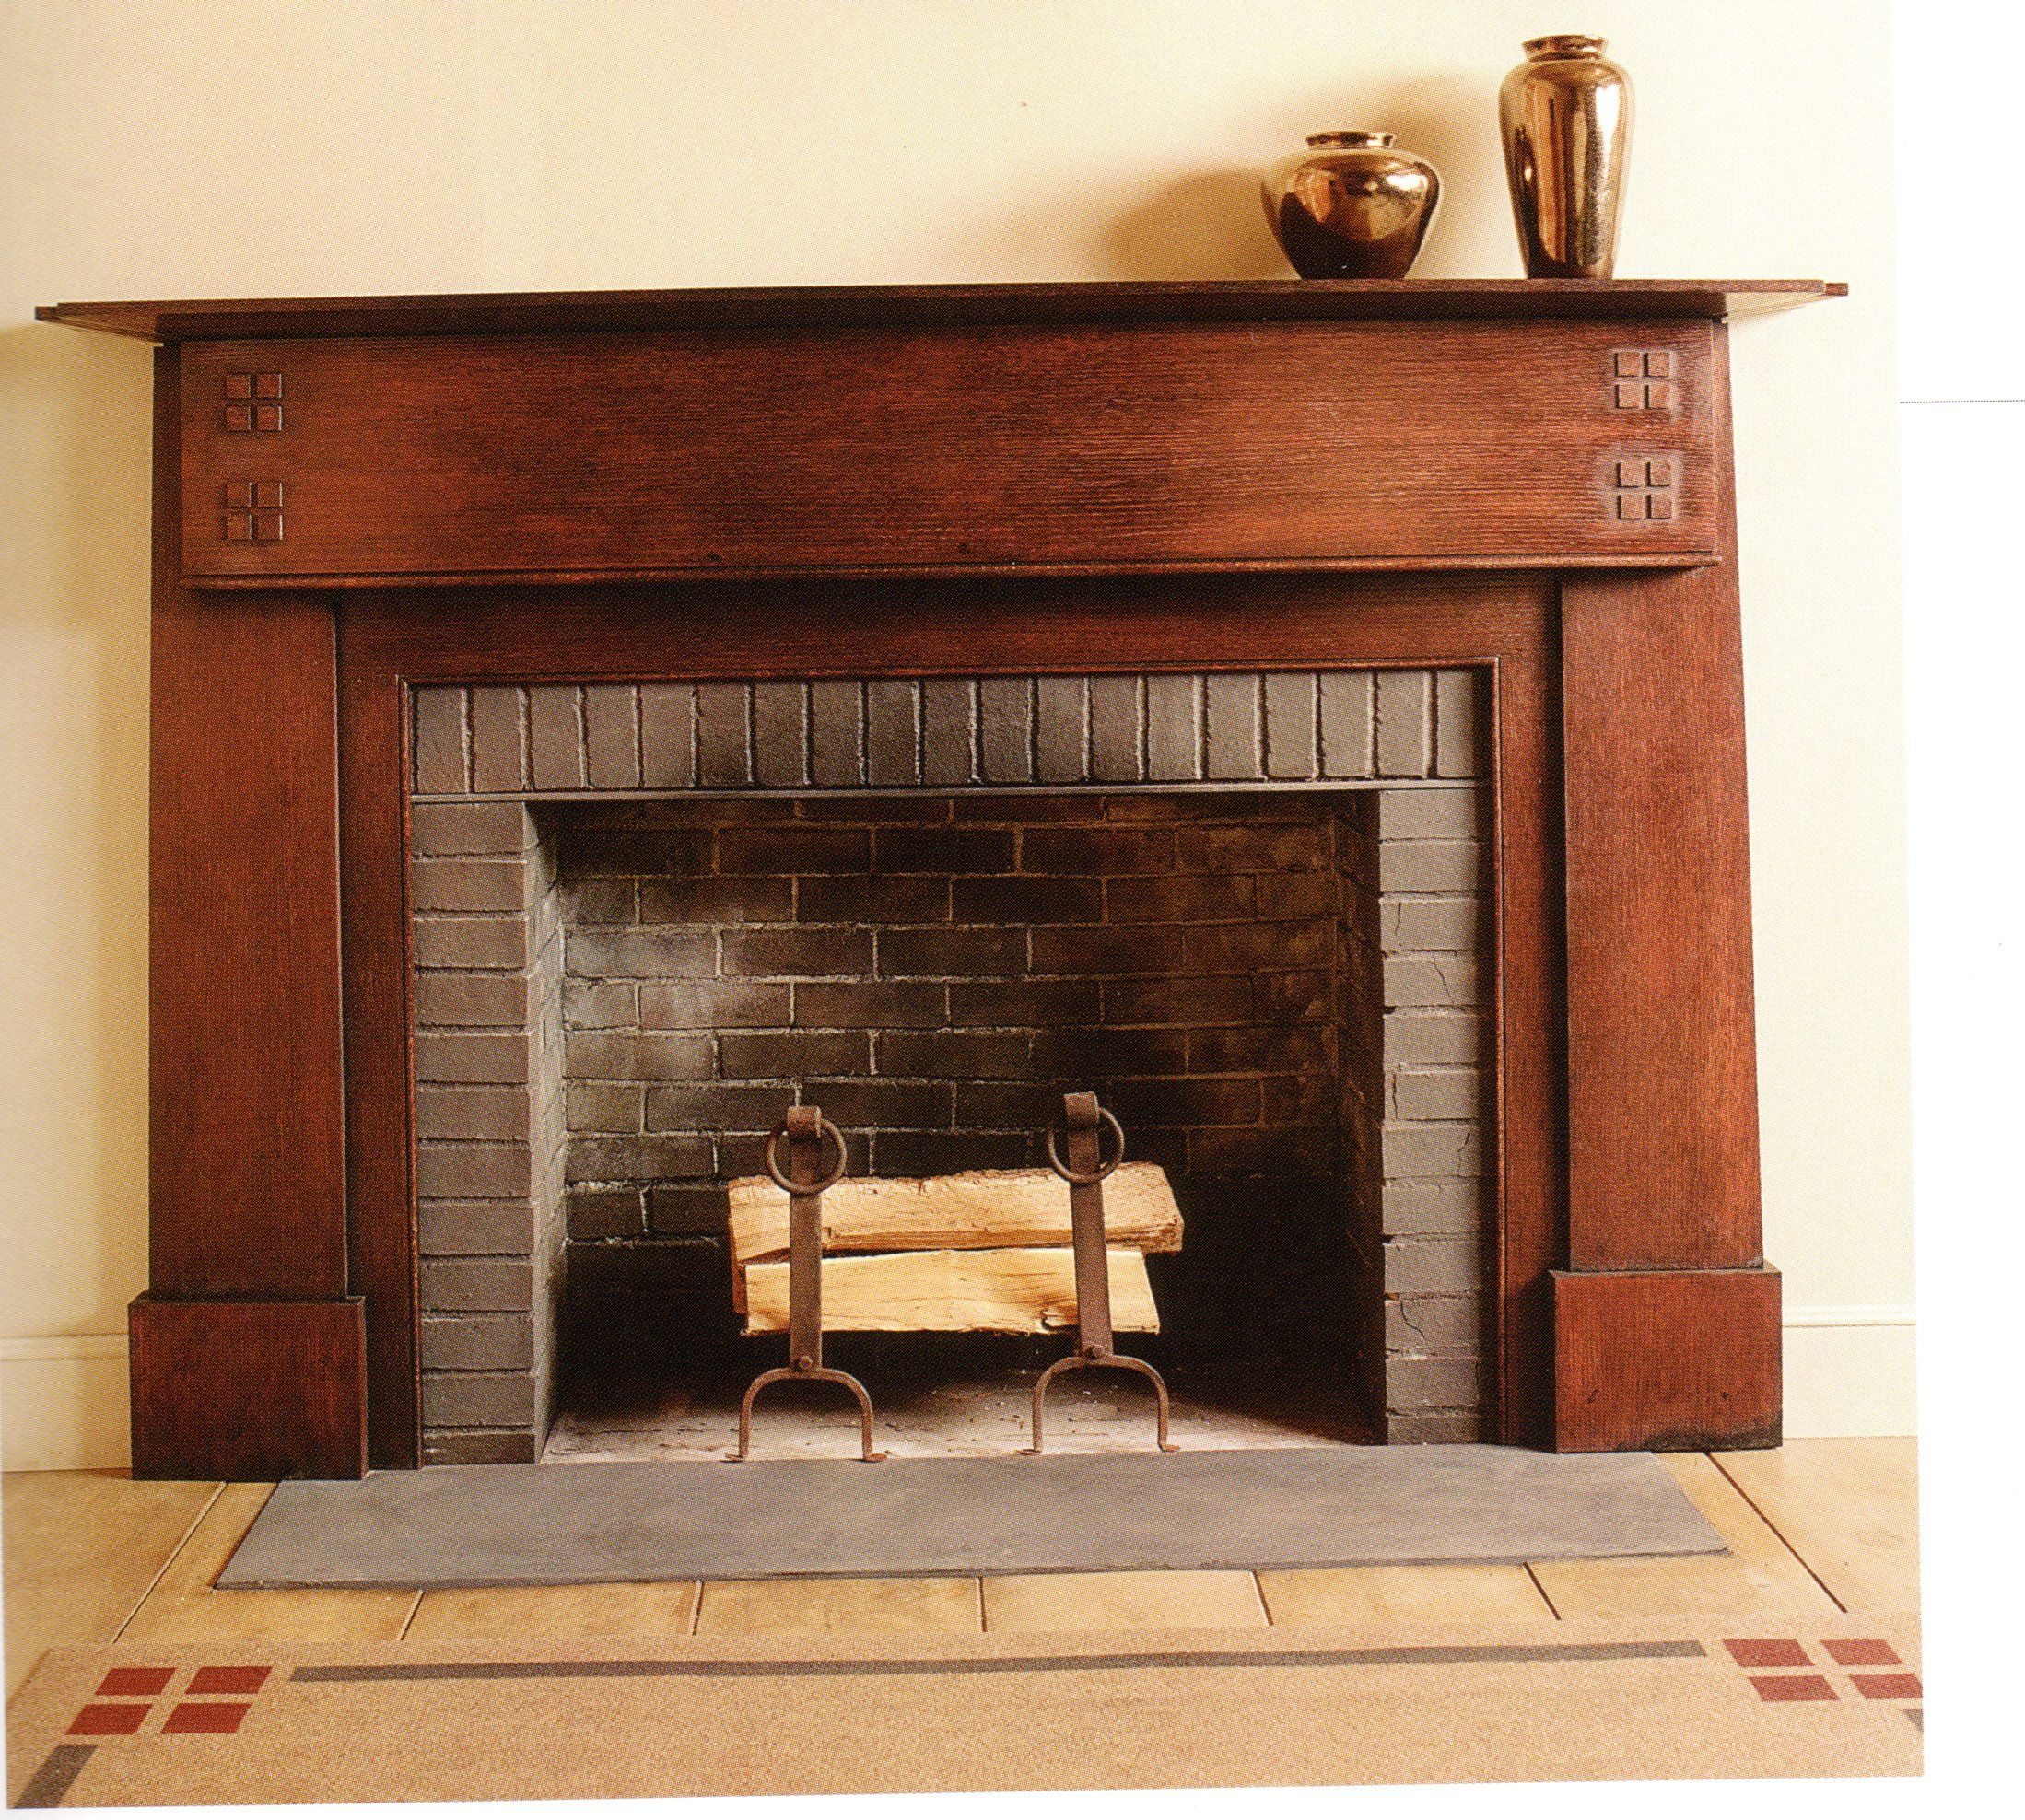 Craftsman style fireplace screen - Find This Pin And More On Craftsman Cottage Design Inspiration Stunning Creation On The Craftsman Style Fireplace